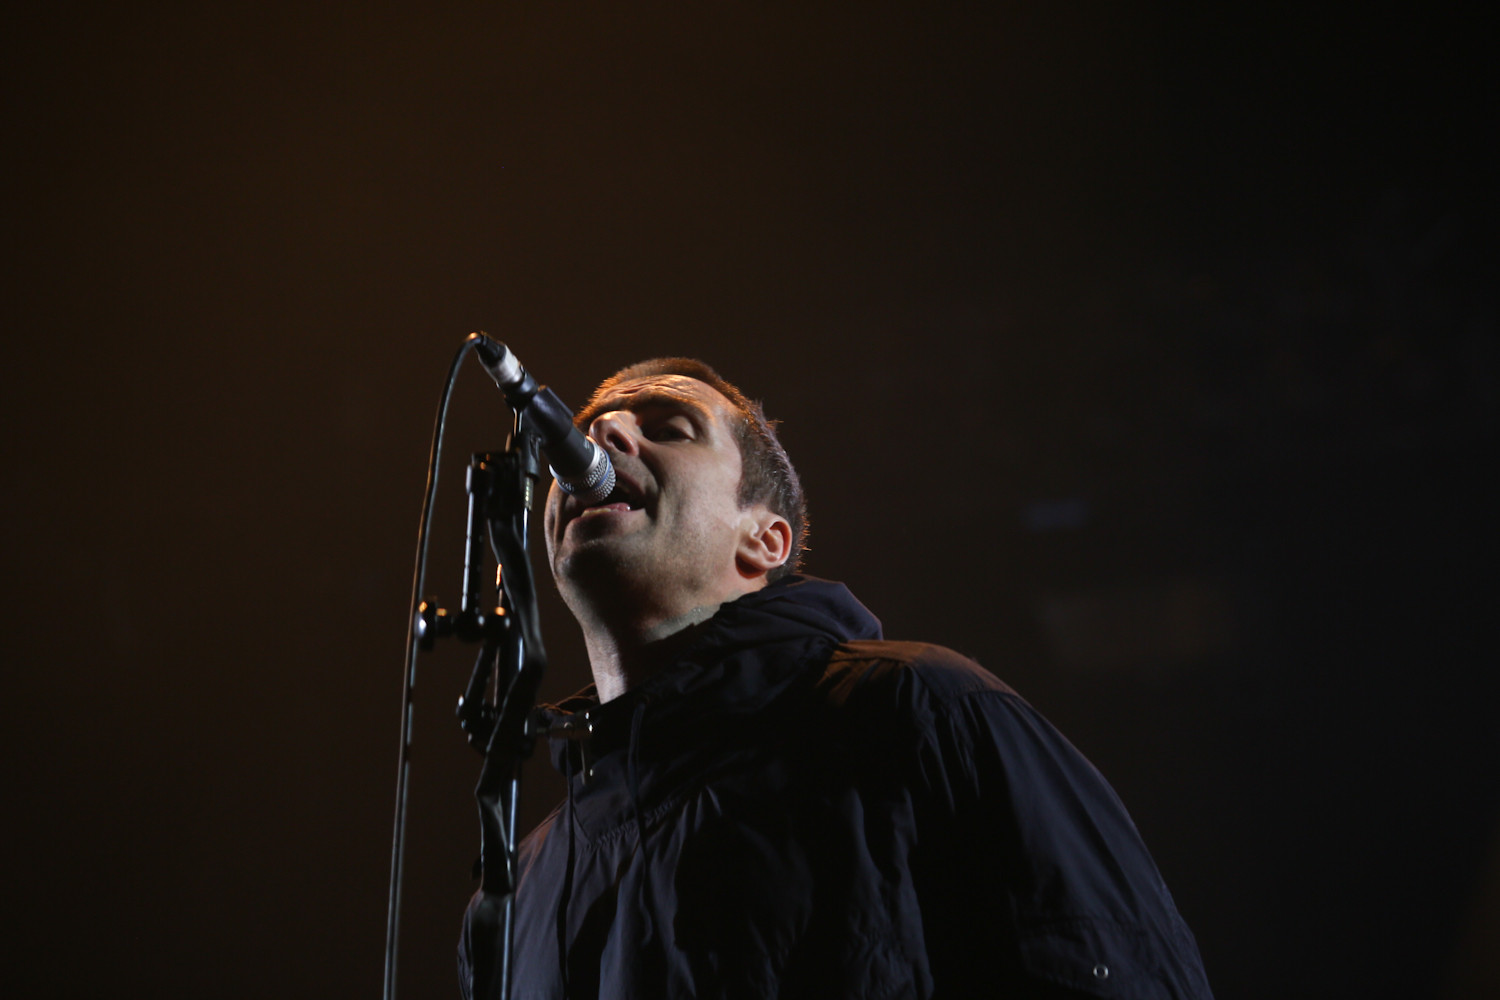 RIOT_LiamGallagher_005